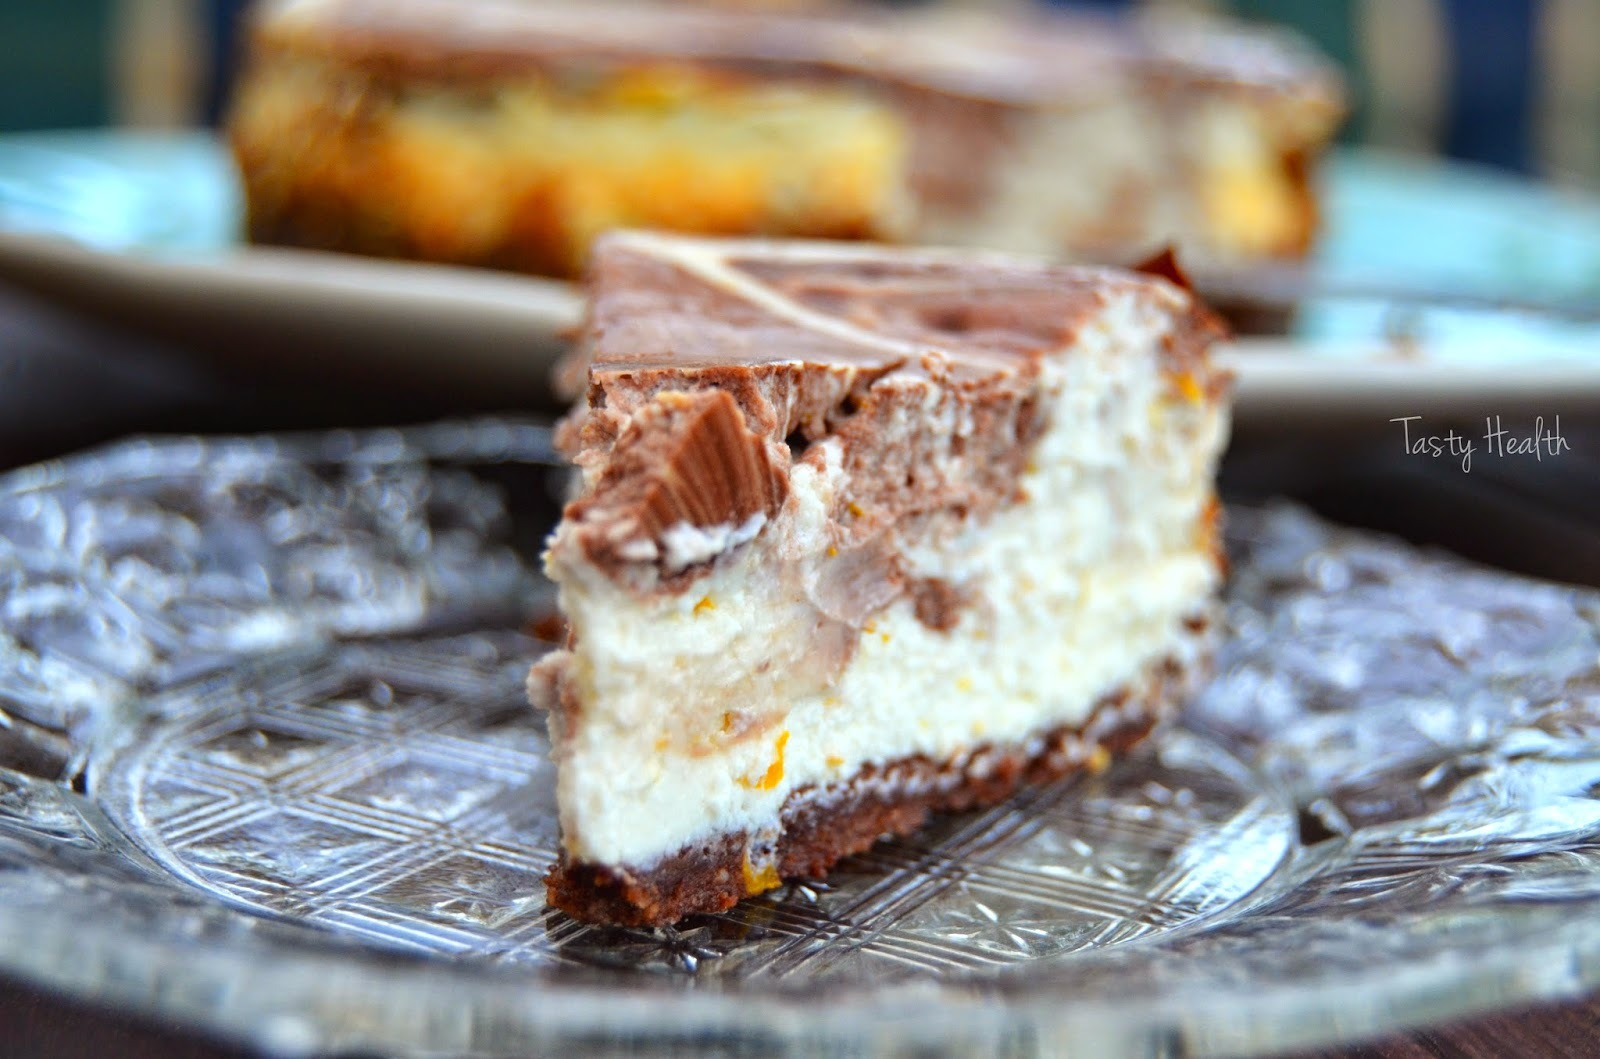 Apelsin proteincheesecake med chokladswirl